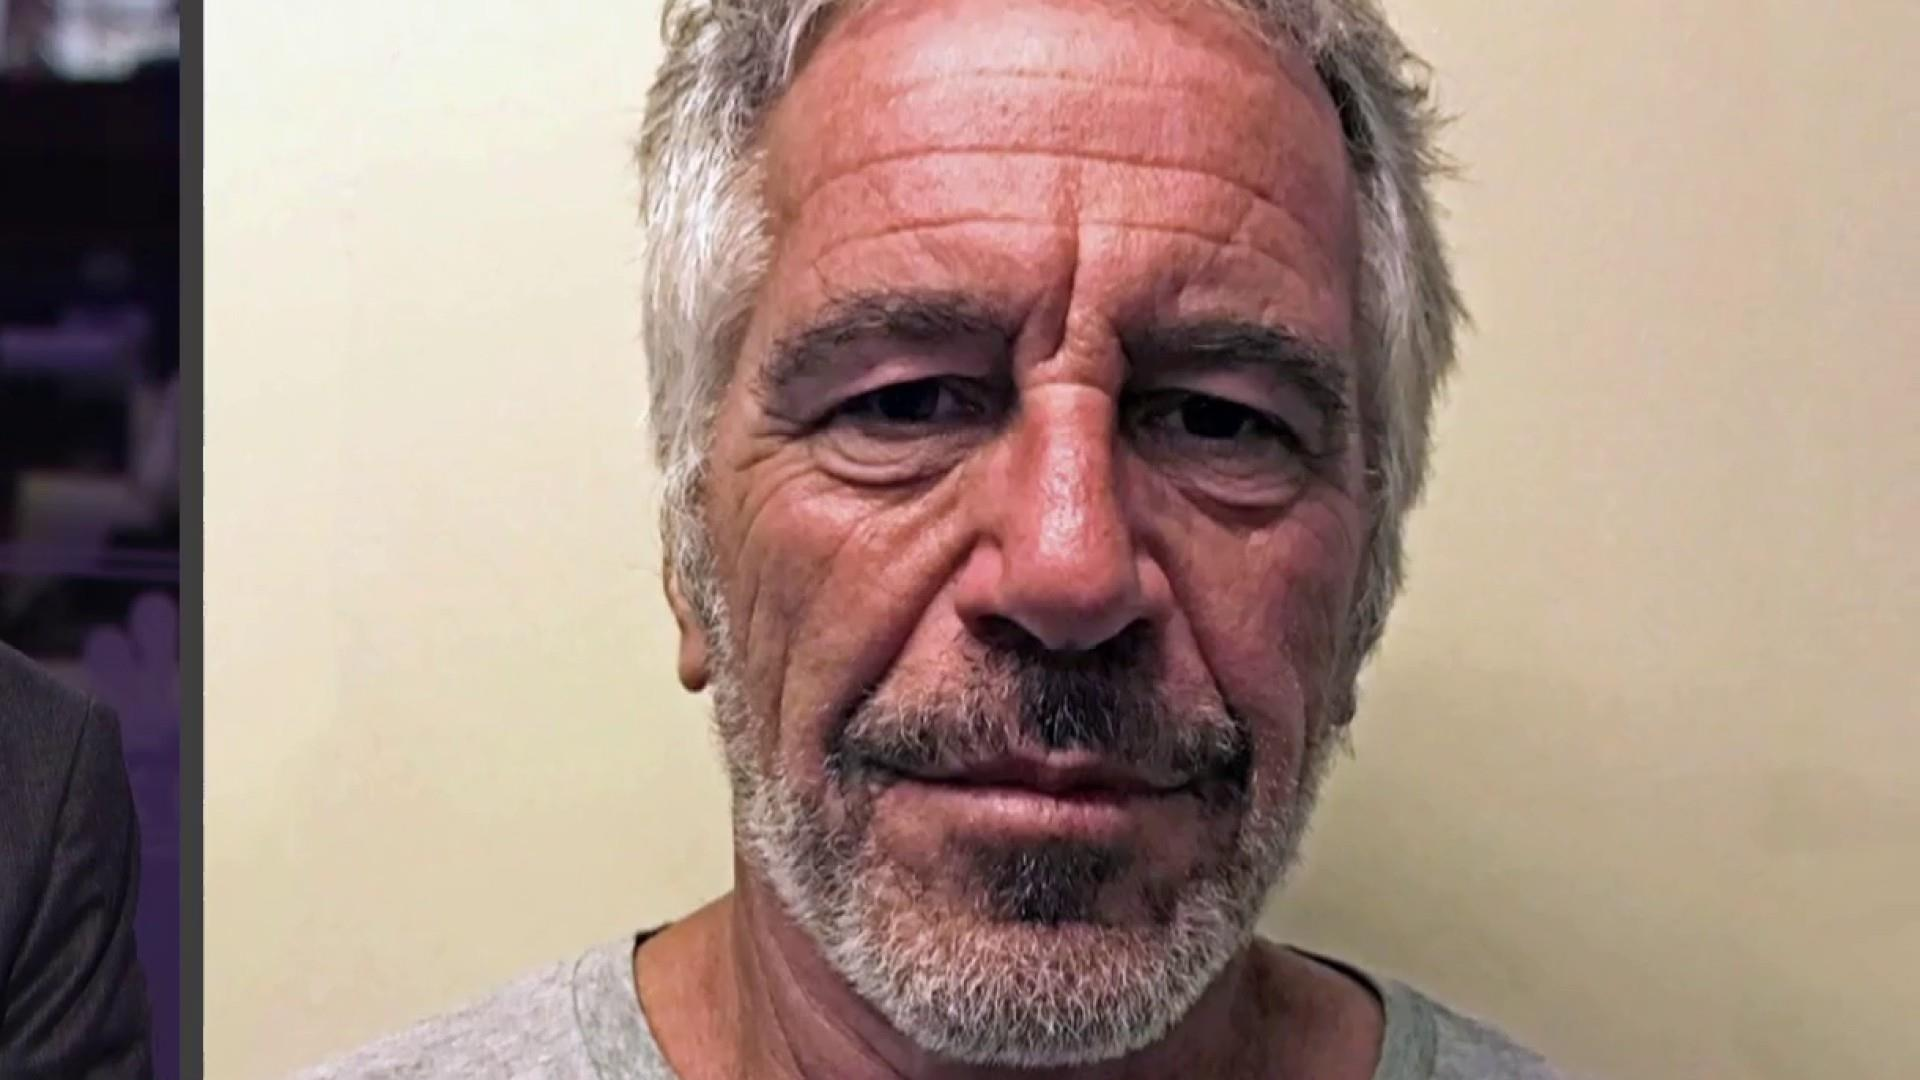 Multiple investigations underway into Jeffrey Epstein's death